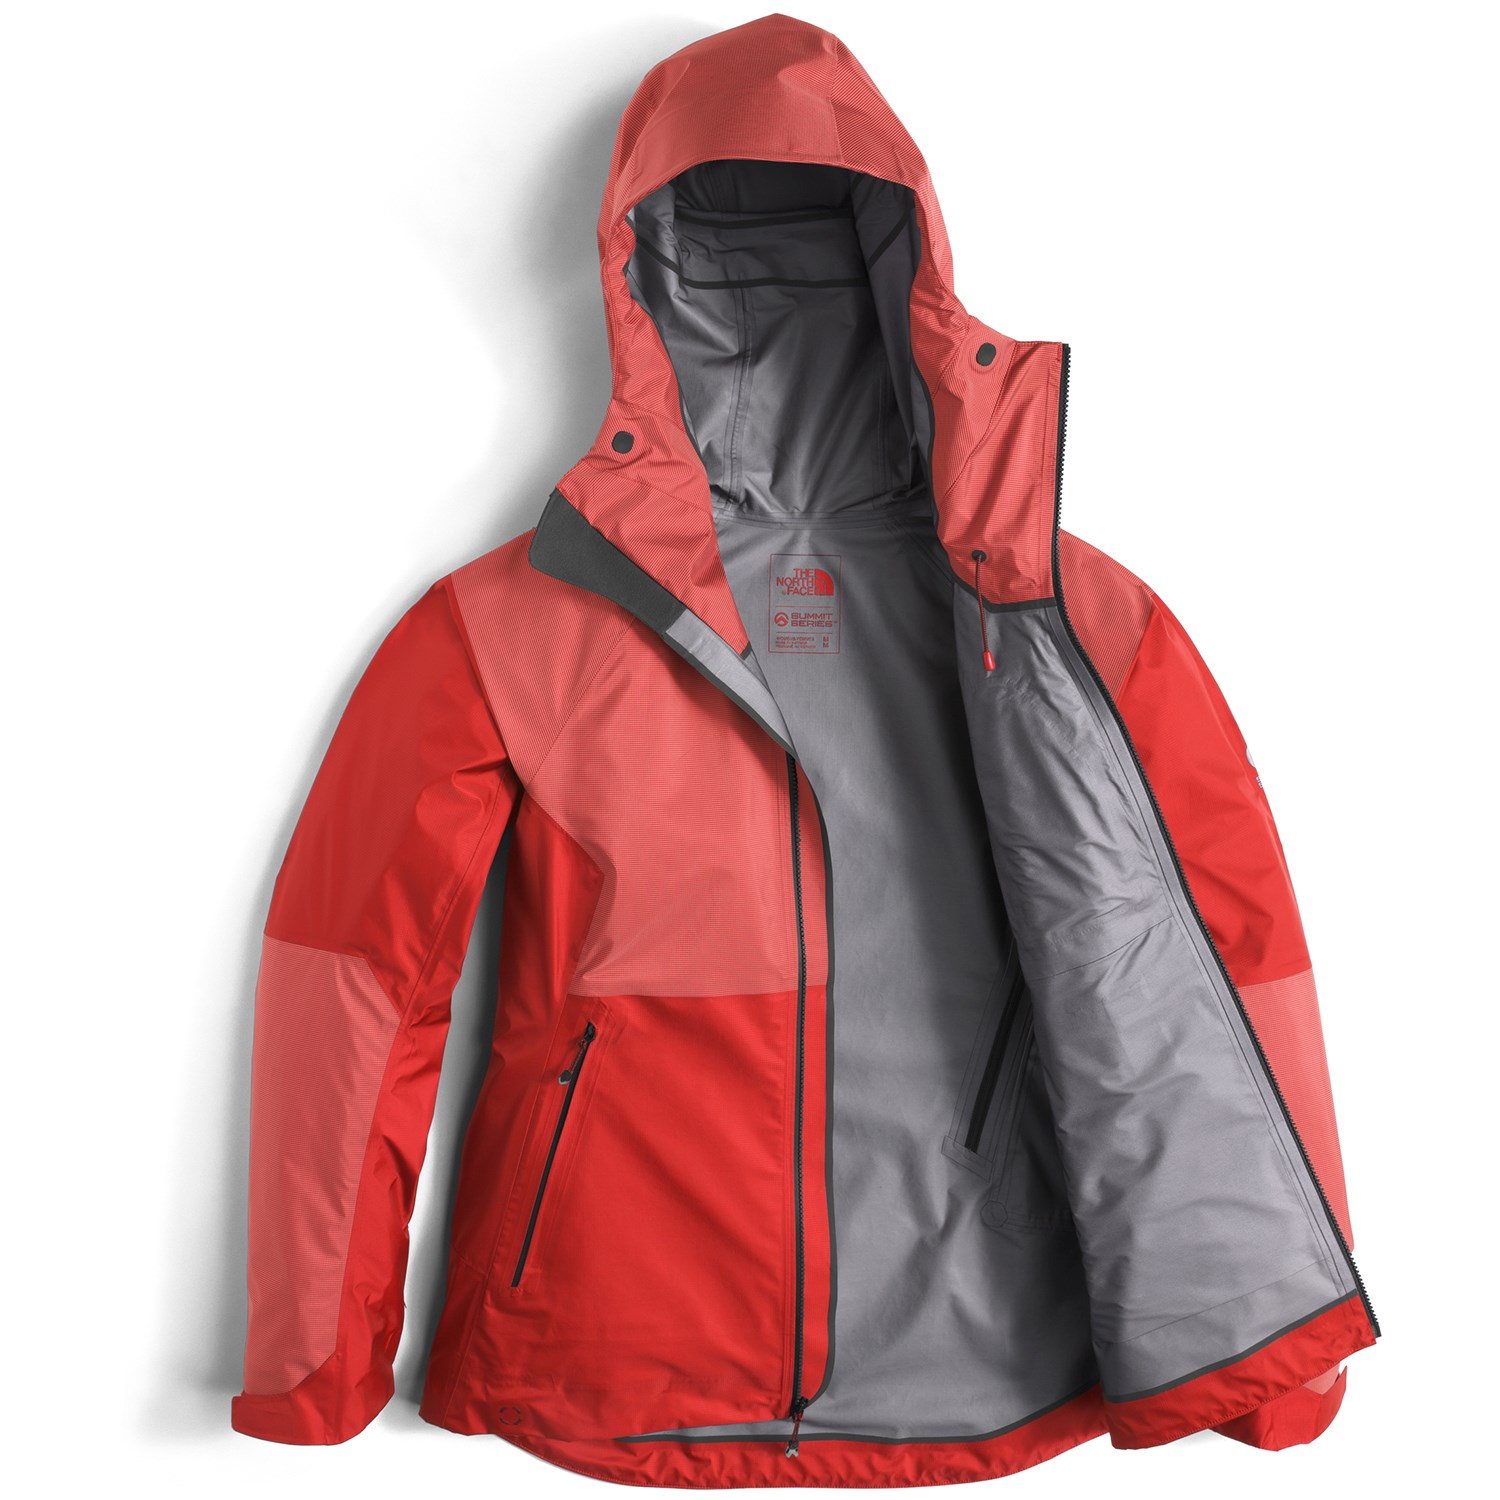 784da97ded3a The North Face Summit L5 FuseForm GORE-TEX C-Knit™ Jacket - Women s ...